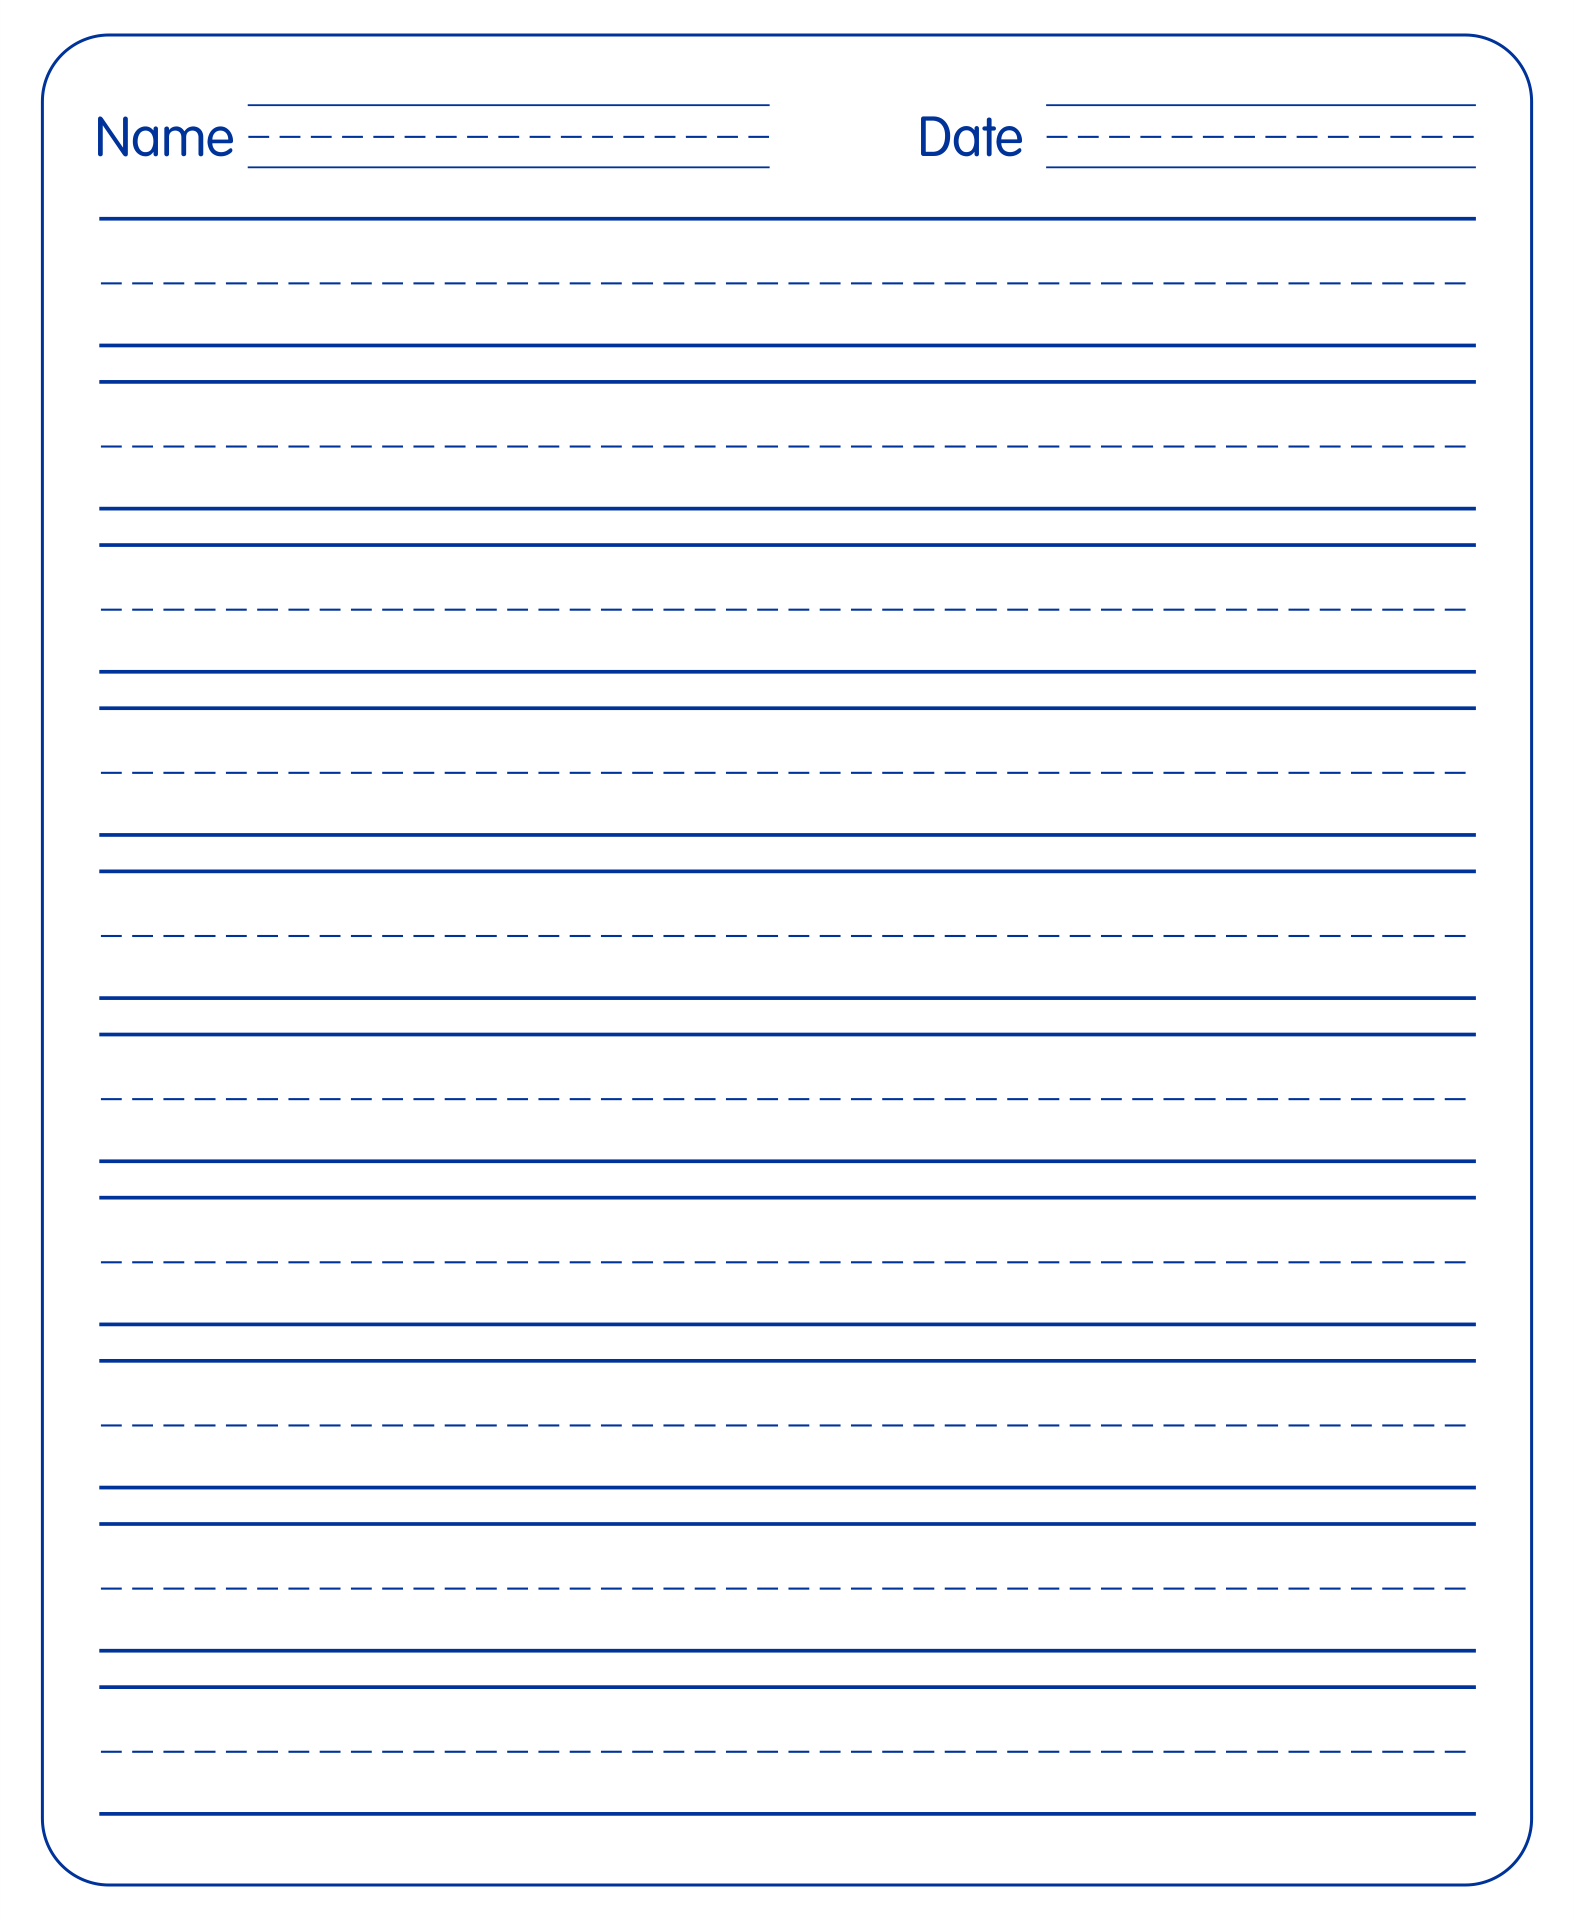 free primary writing paper Explore our massive collection of free printable writing paper for boys and girls of all ages print out a page or two when you need them, or keep a stash for rainy.